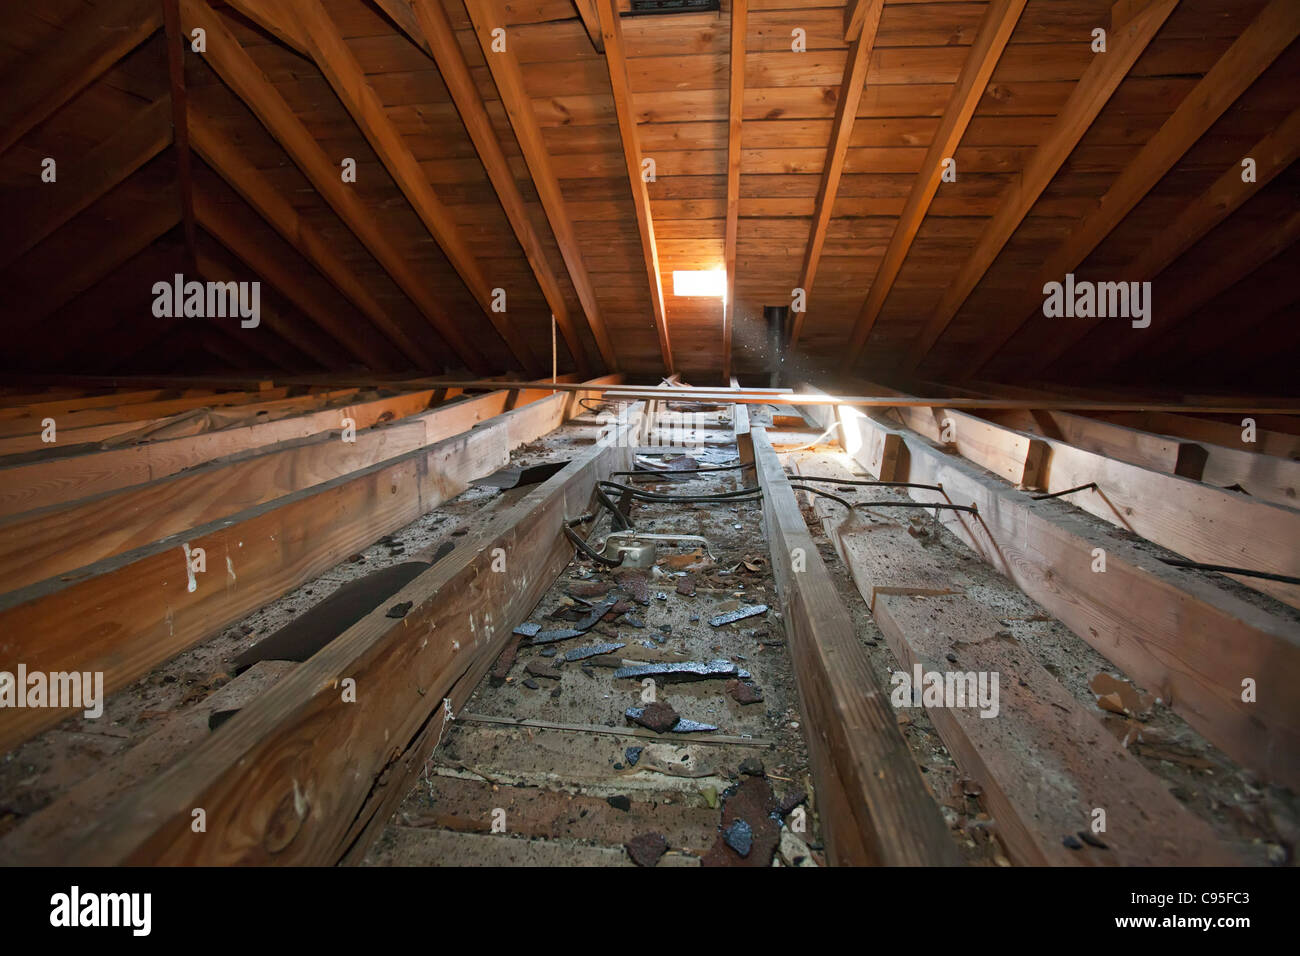 An uninsulated attic. - Stock Image